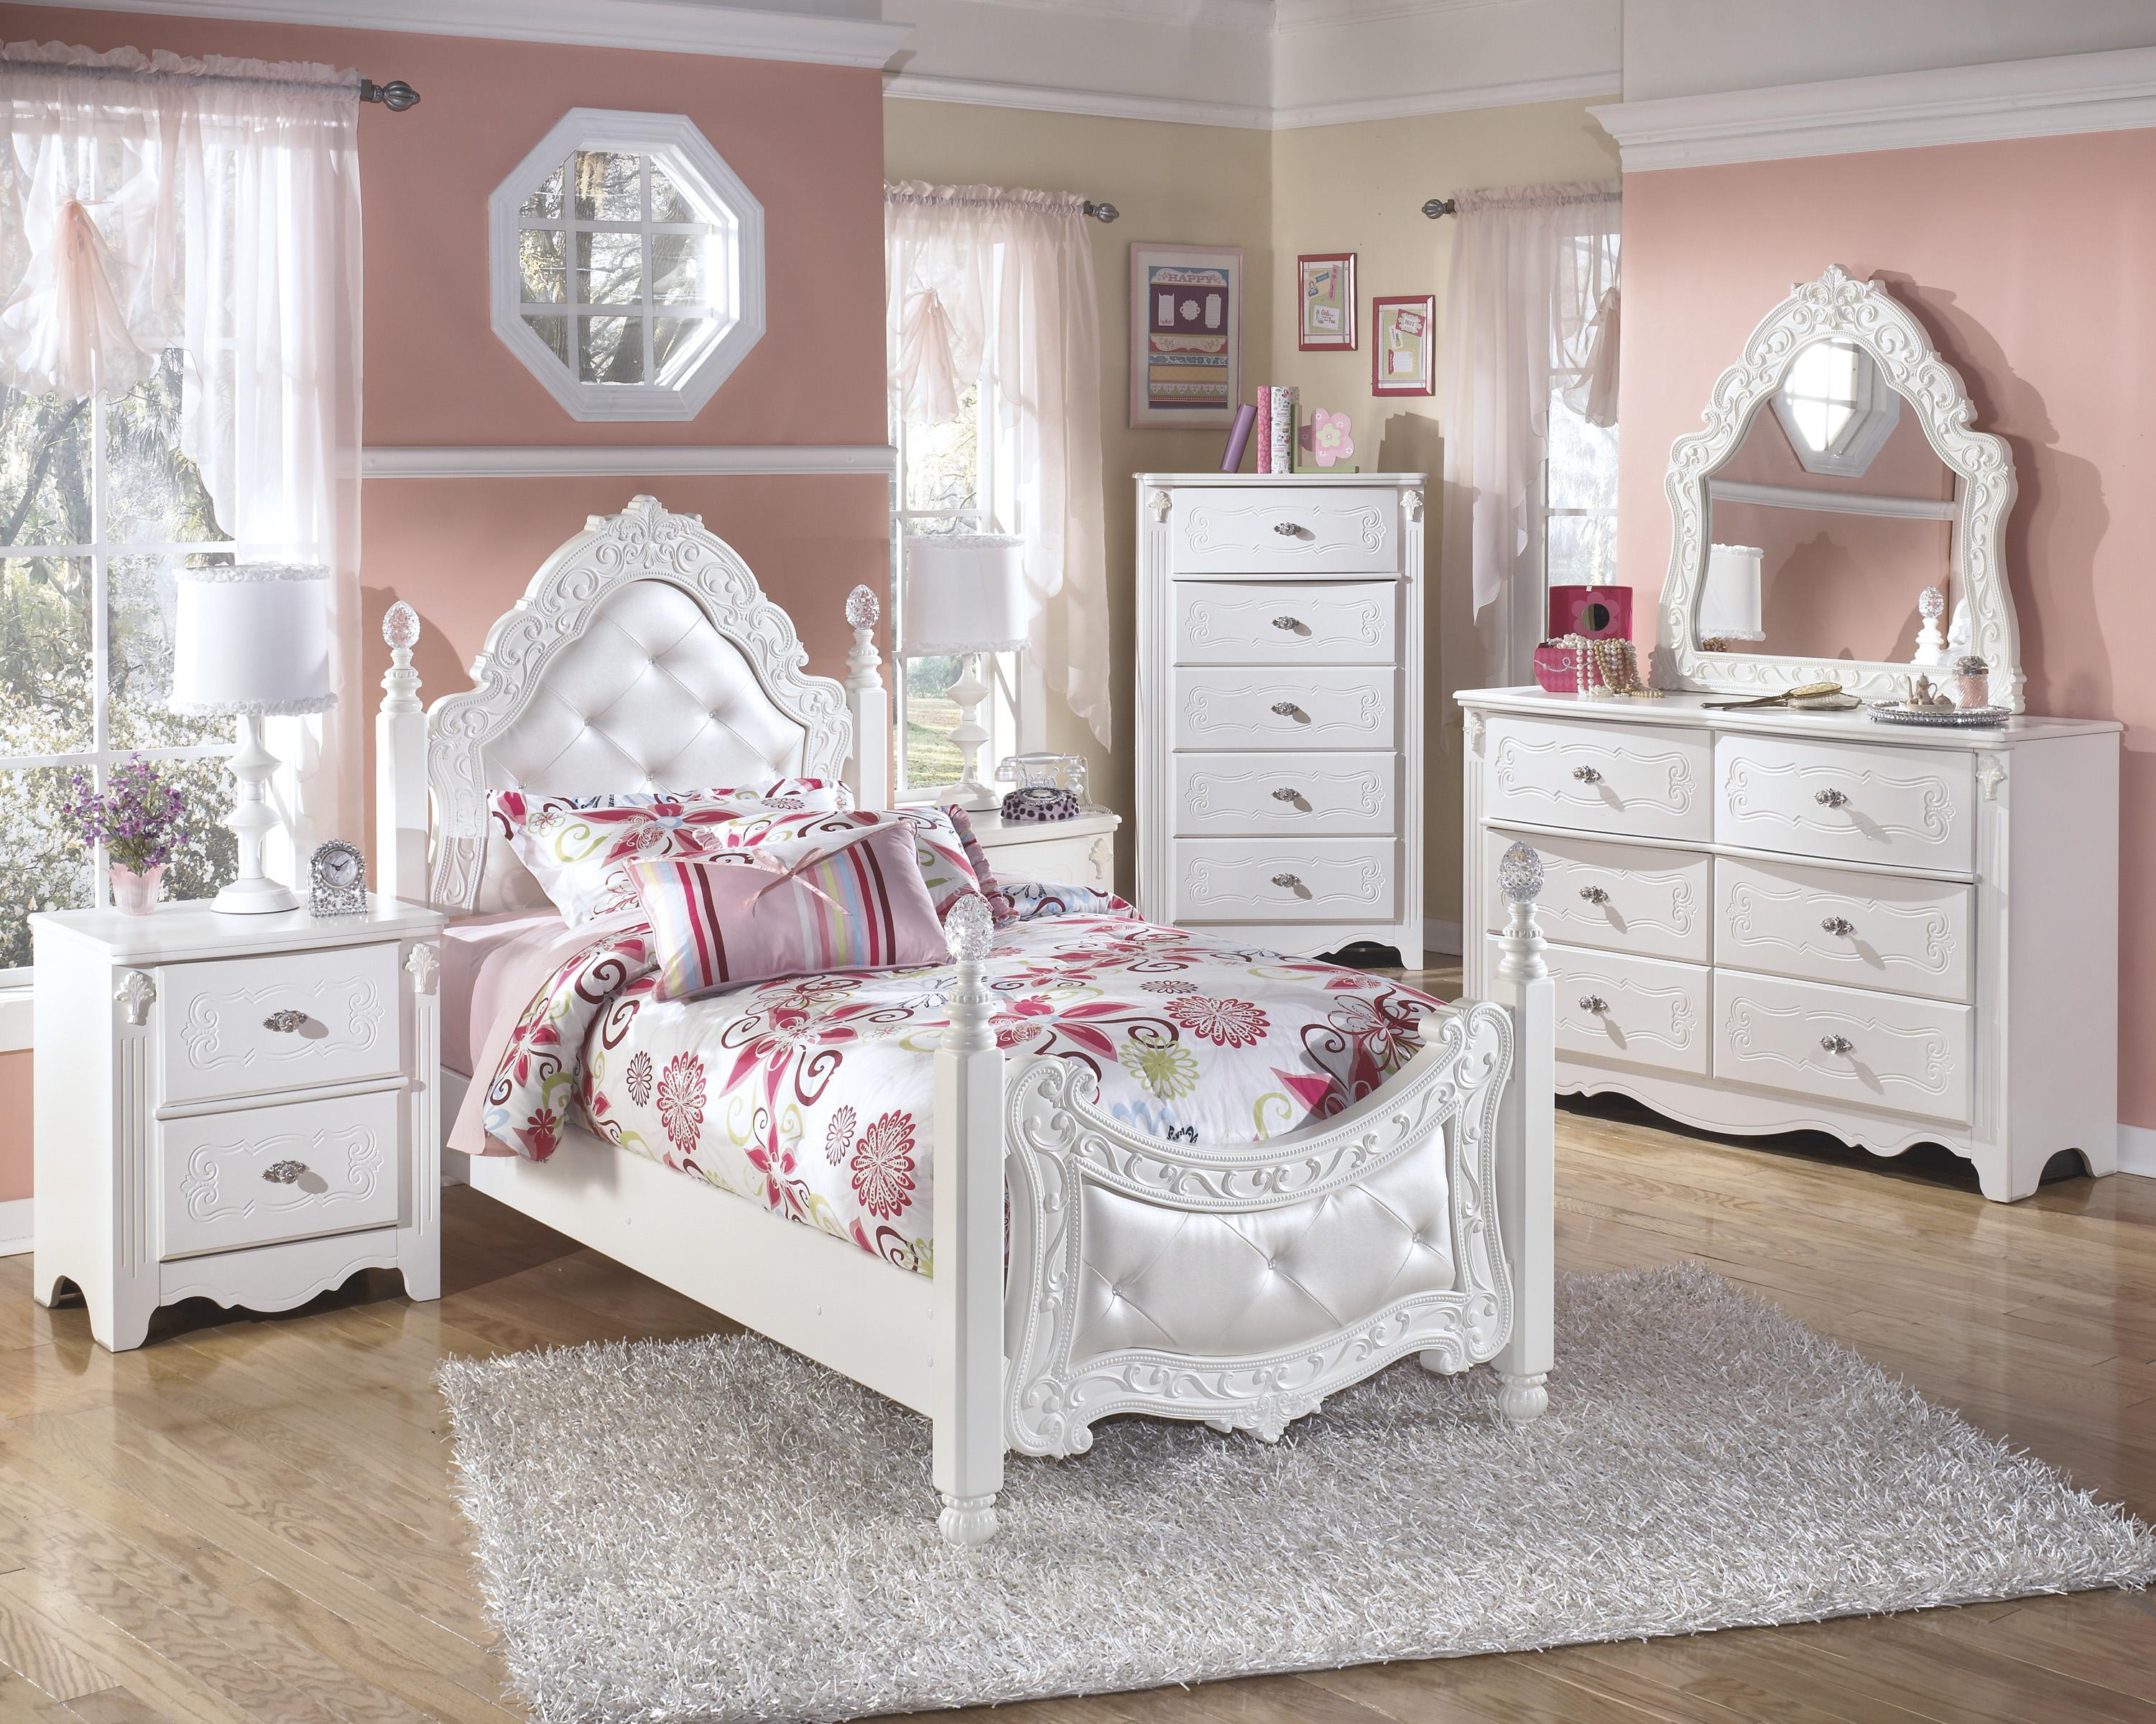 Signature Design by Ashley Exquisite Twin Bedroom Group - Item Number: B188 T Bedroom Group 3